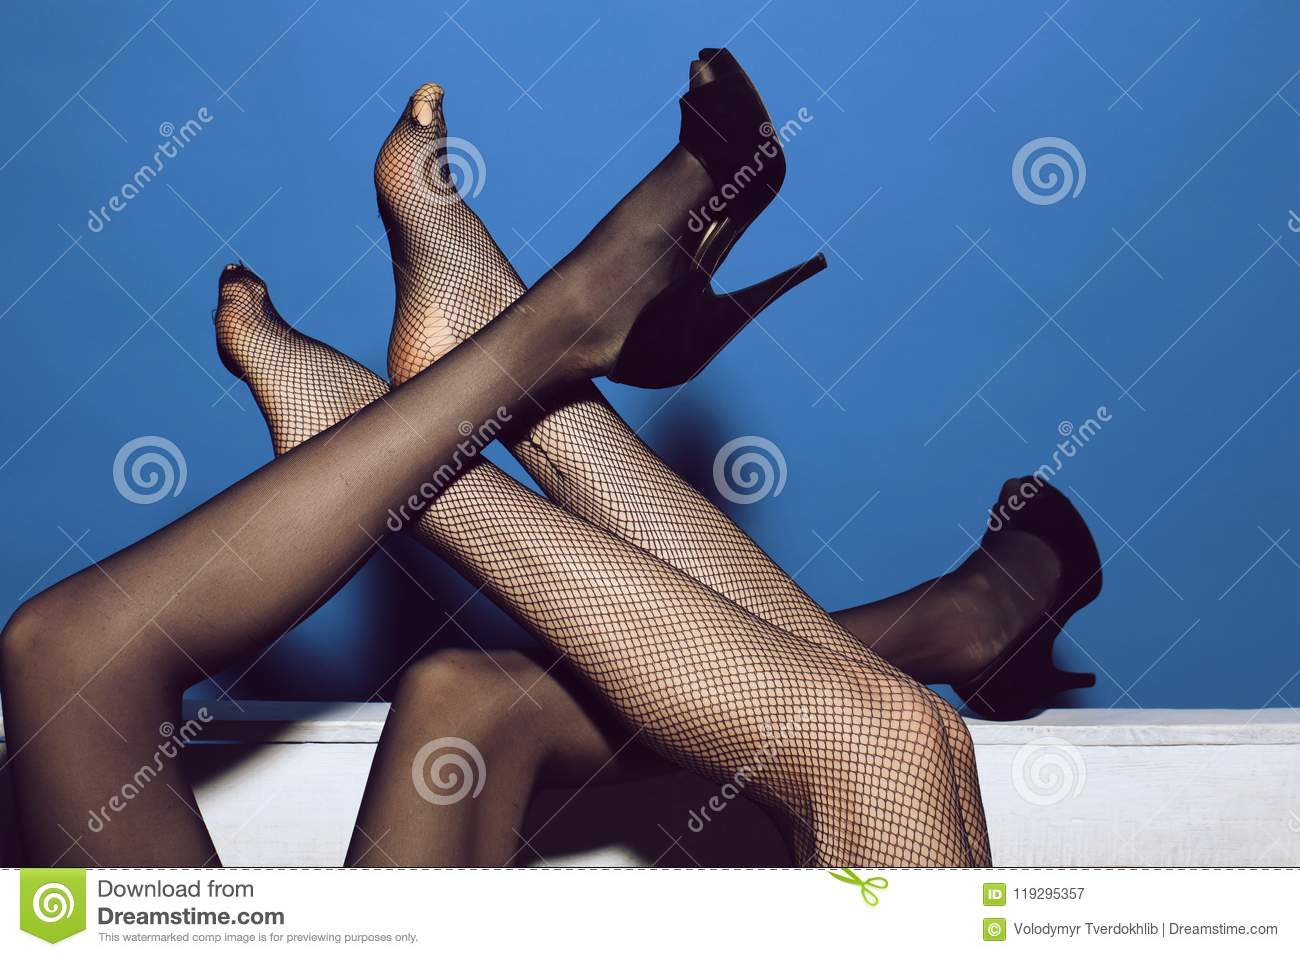 Intertwined Female Feet Legs Of Women In Fashionable Tights And Shoes